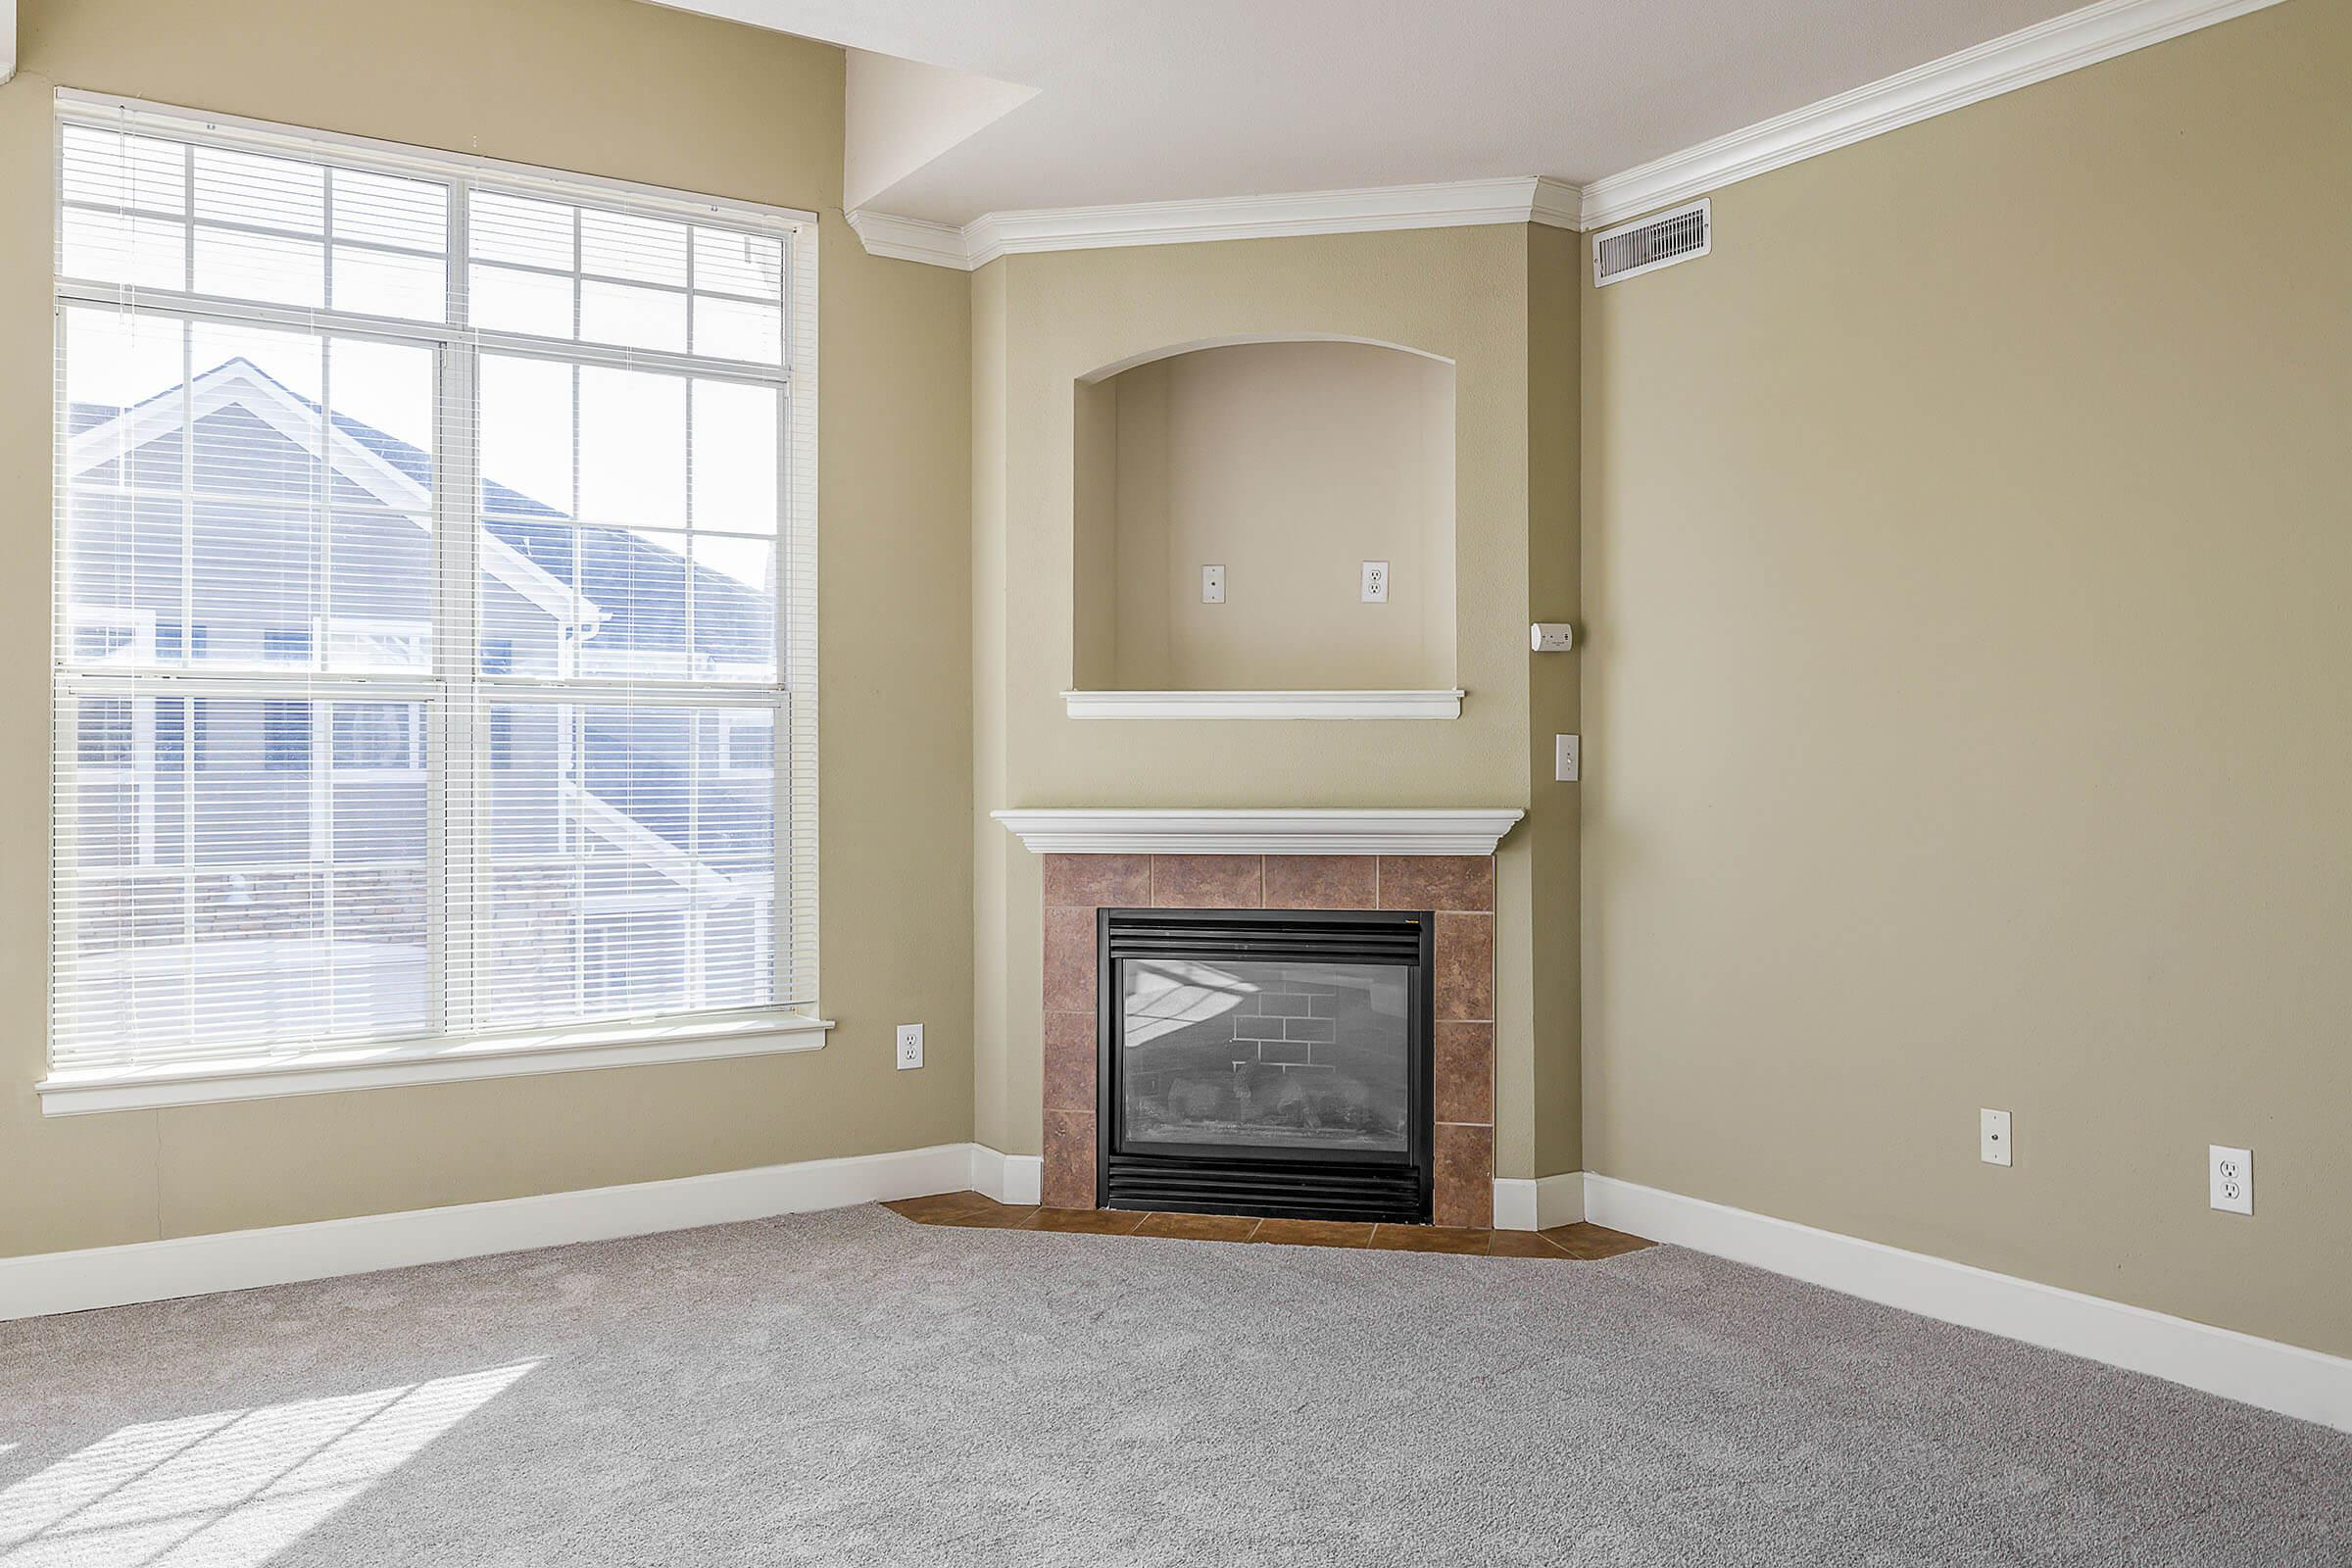 a room with a fireplace and a large window